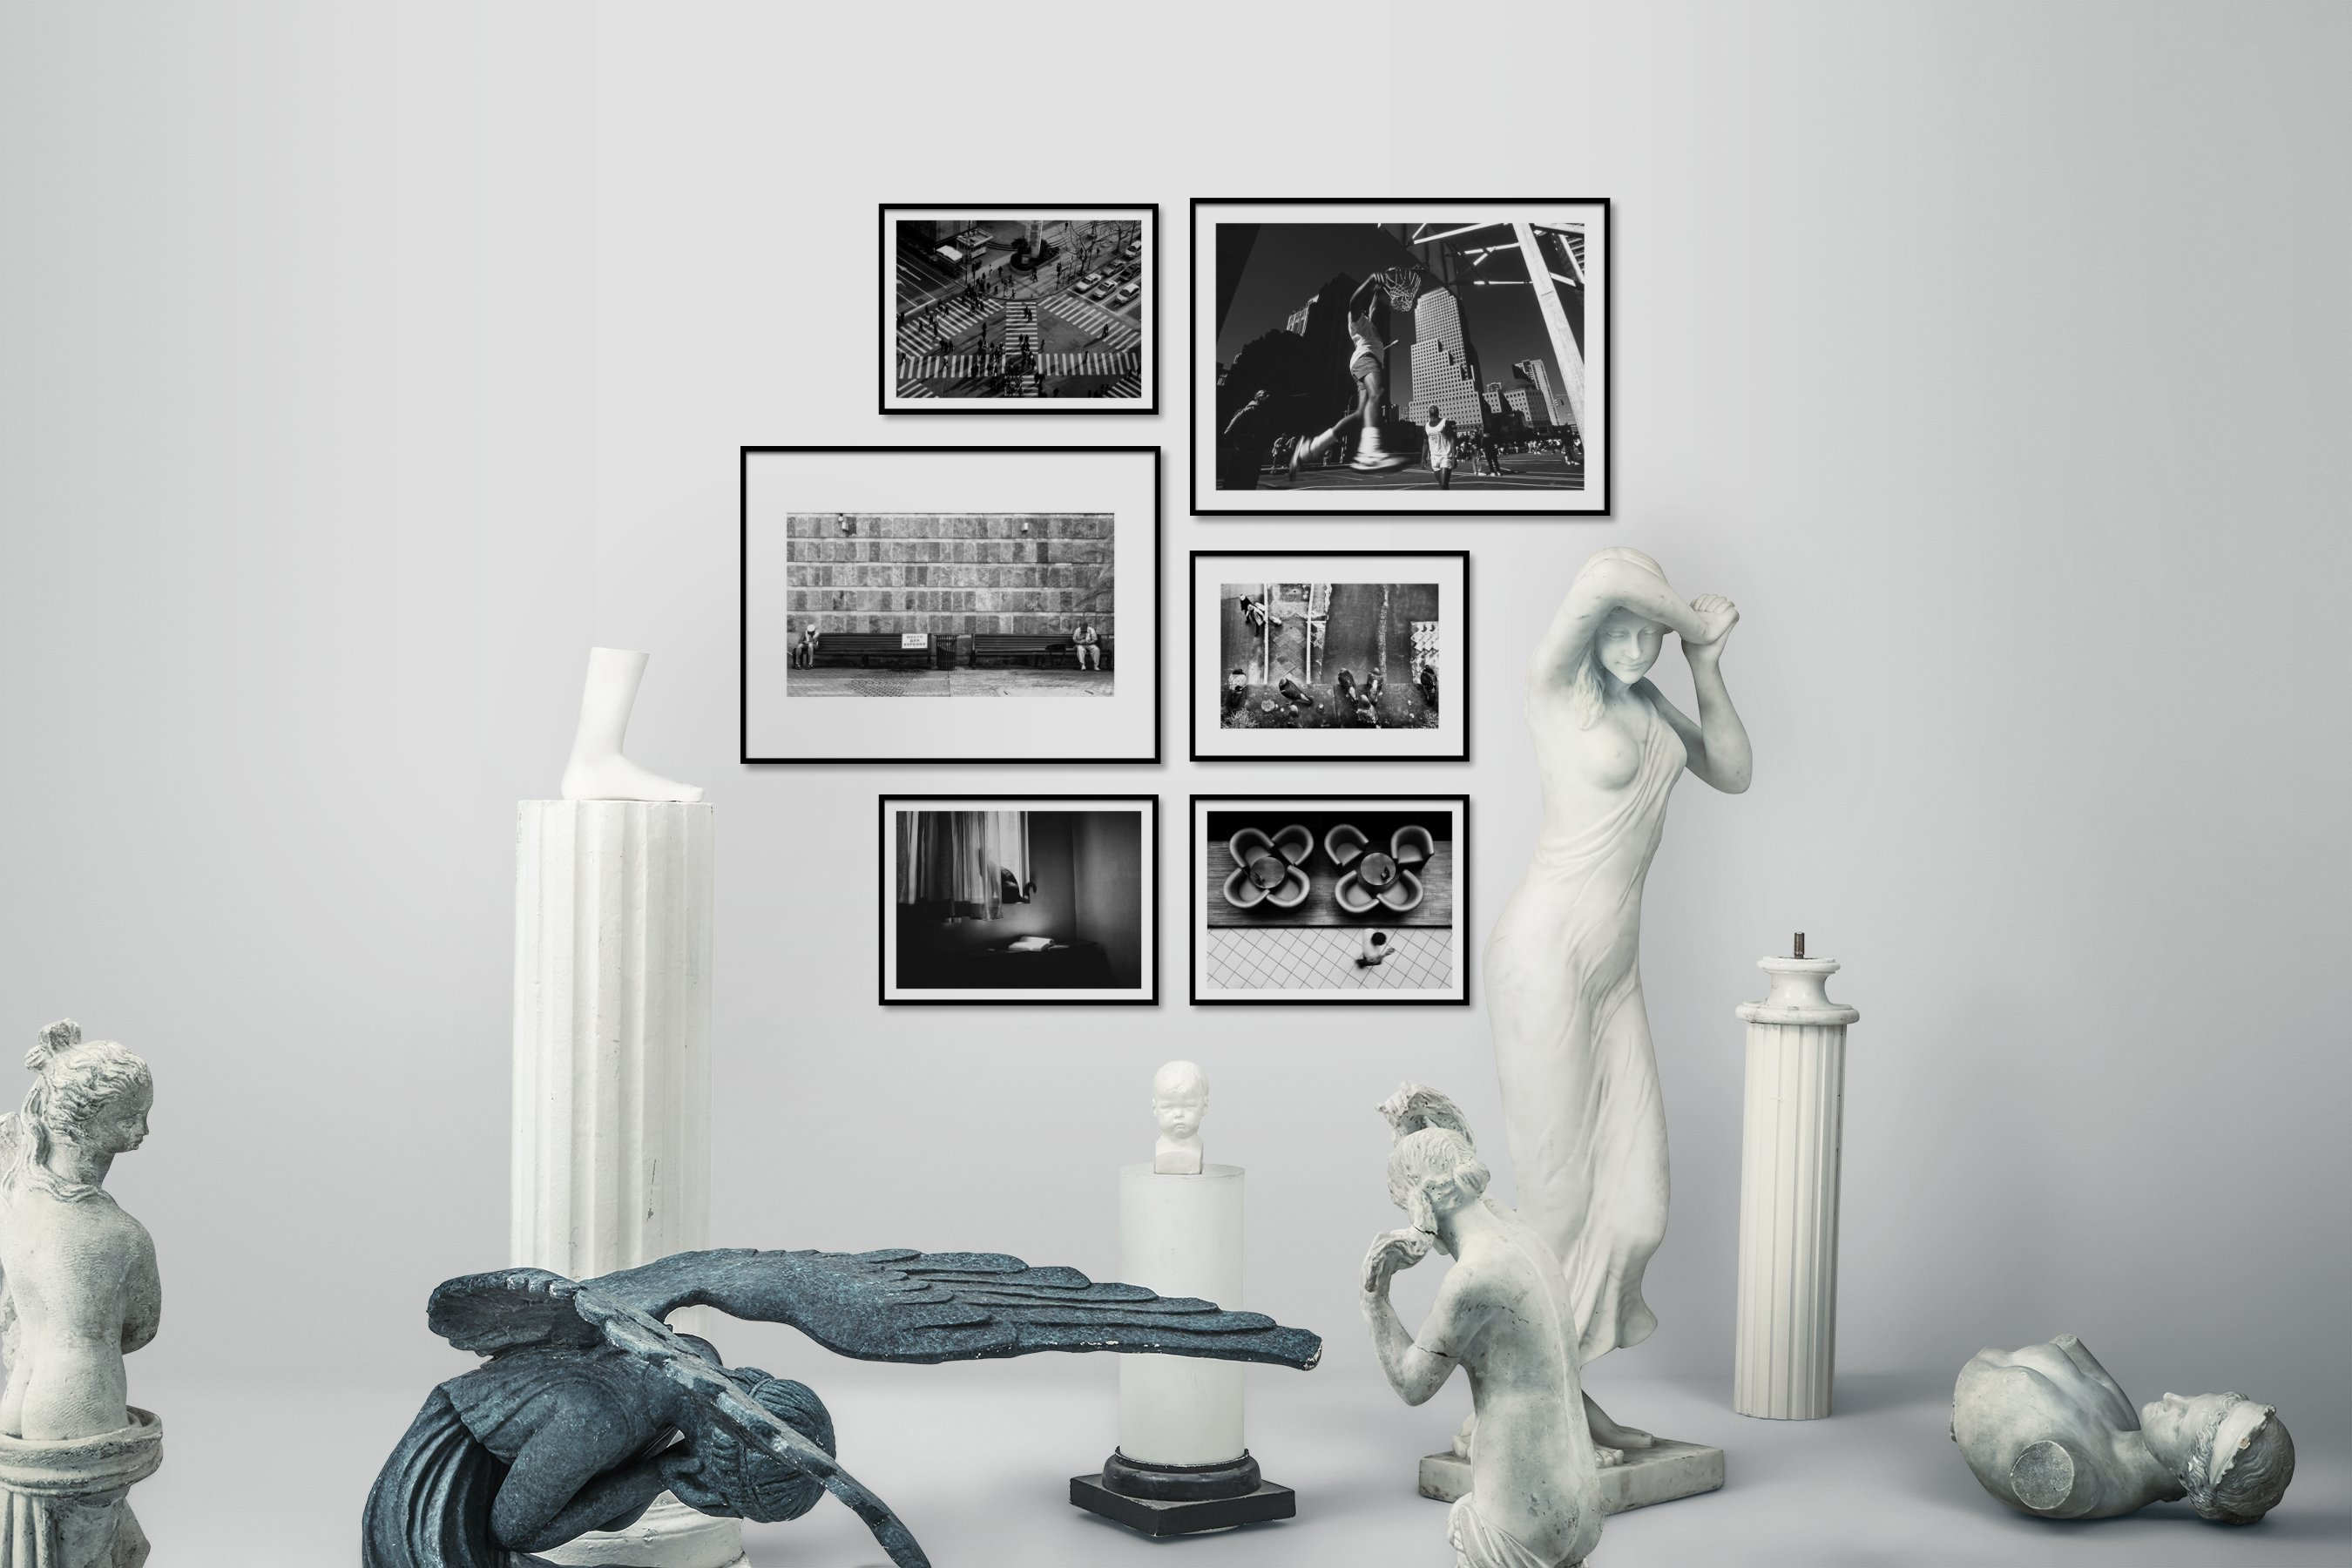 Gallery wall idea with six framed pictures arranged on a wall depicting Black & White, City Life, Americana, Vintage, Animals, and For the Moderate